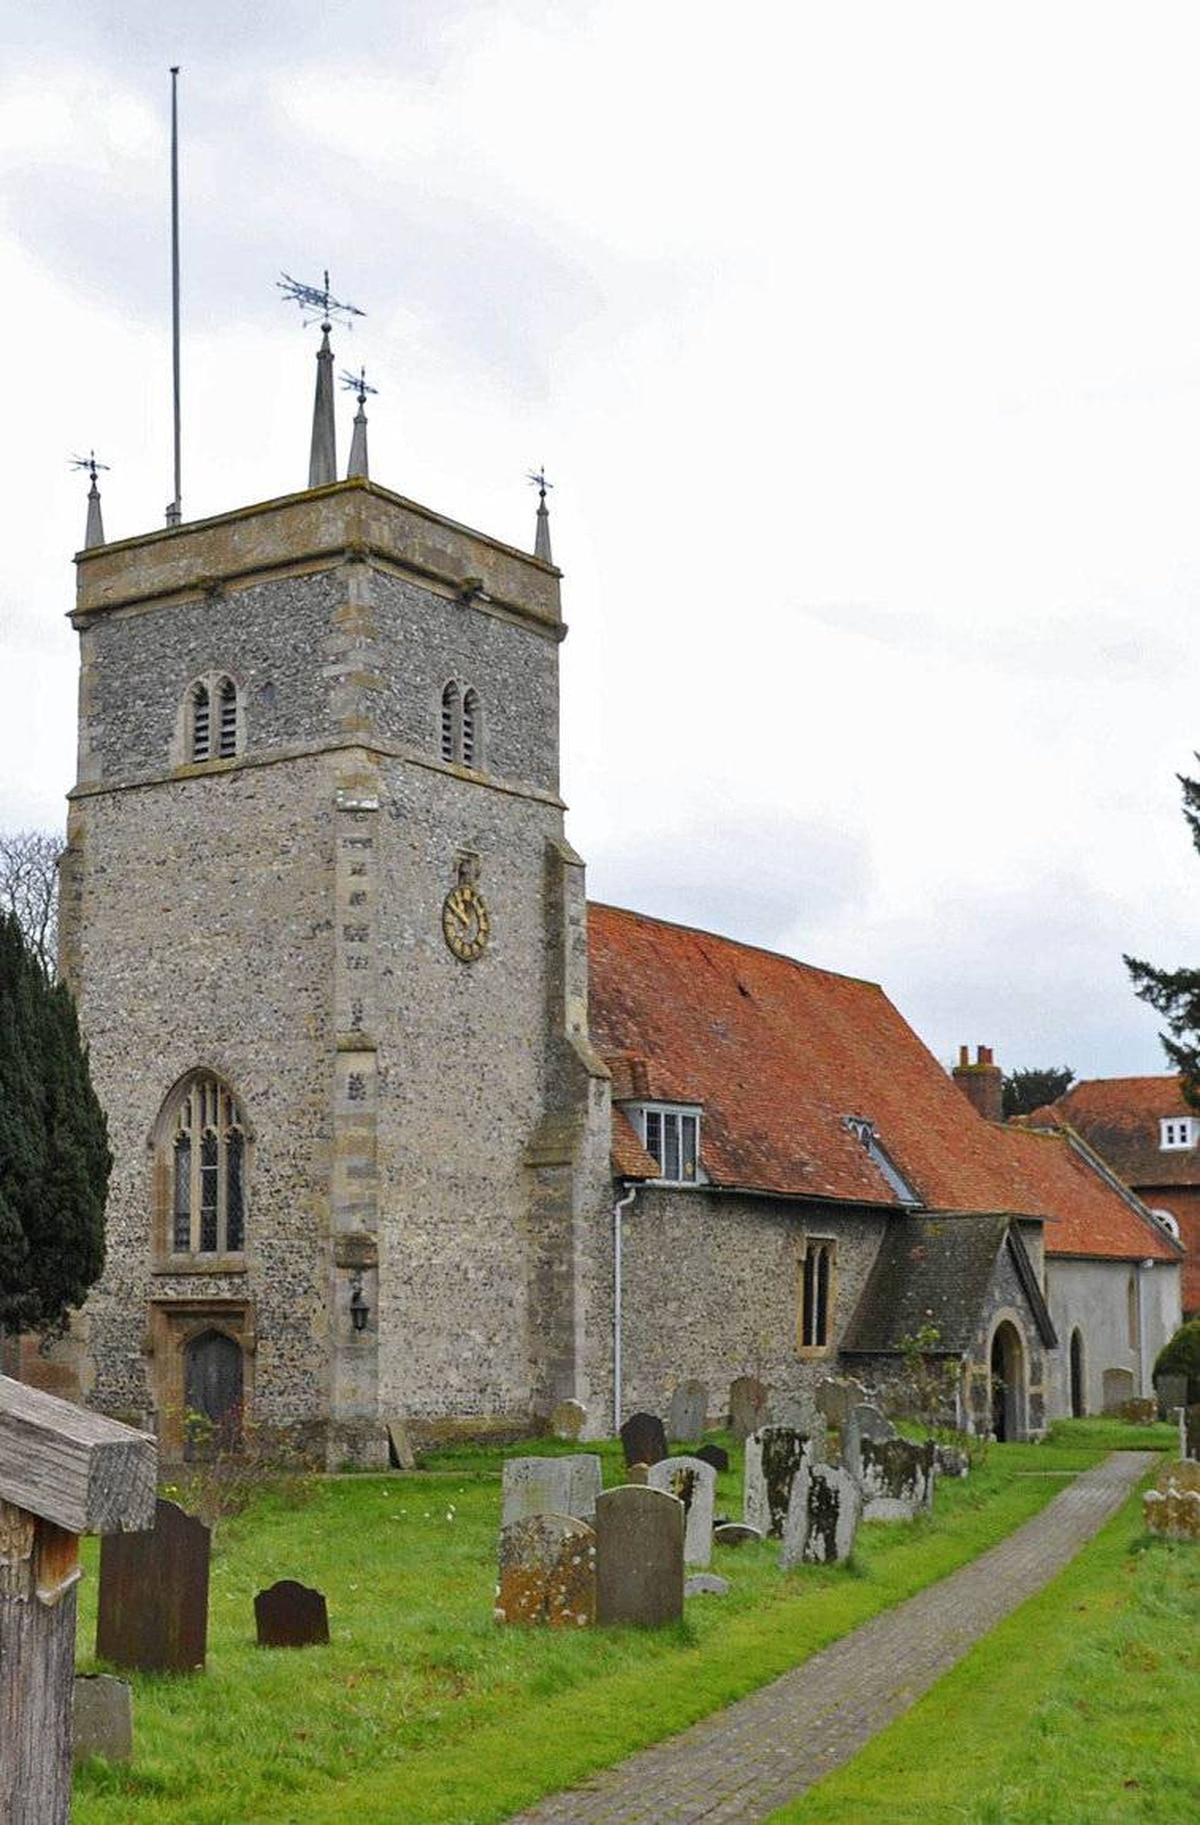 St Mary's parish church is seen in the village of Bucklebury in southern England November 17, 2010. Kate Middleton's family lives near the village.